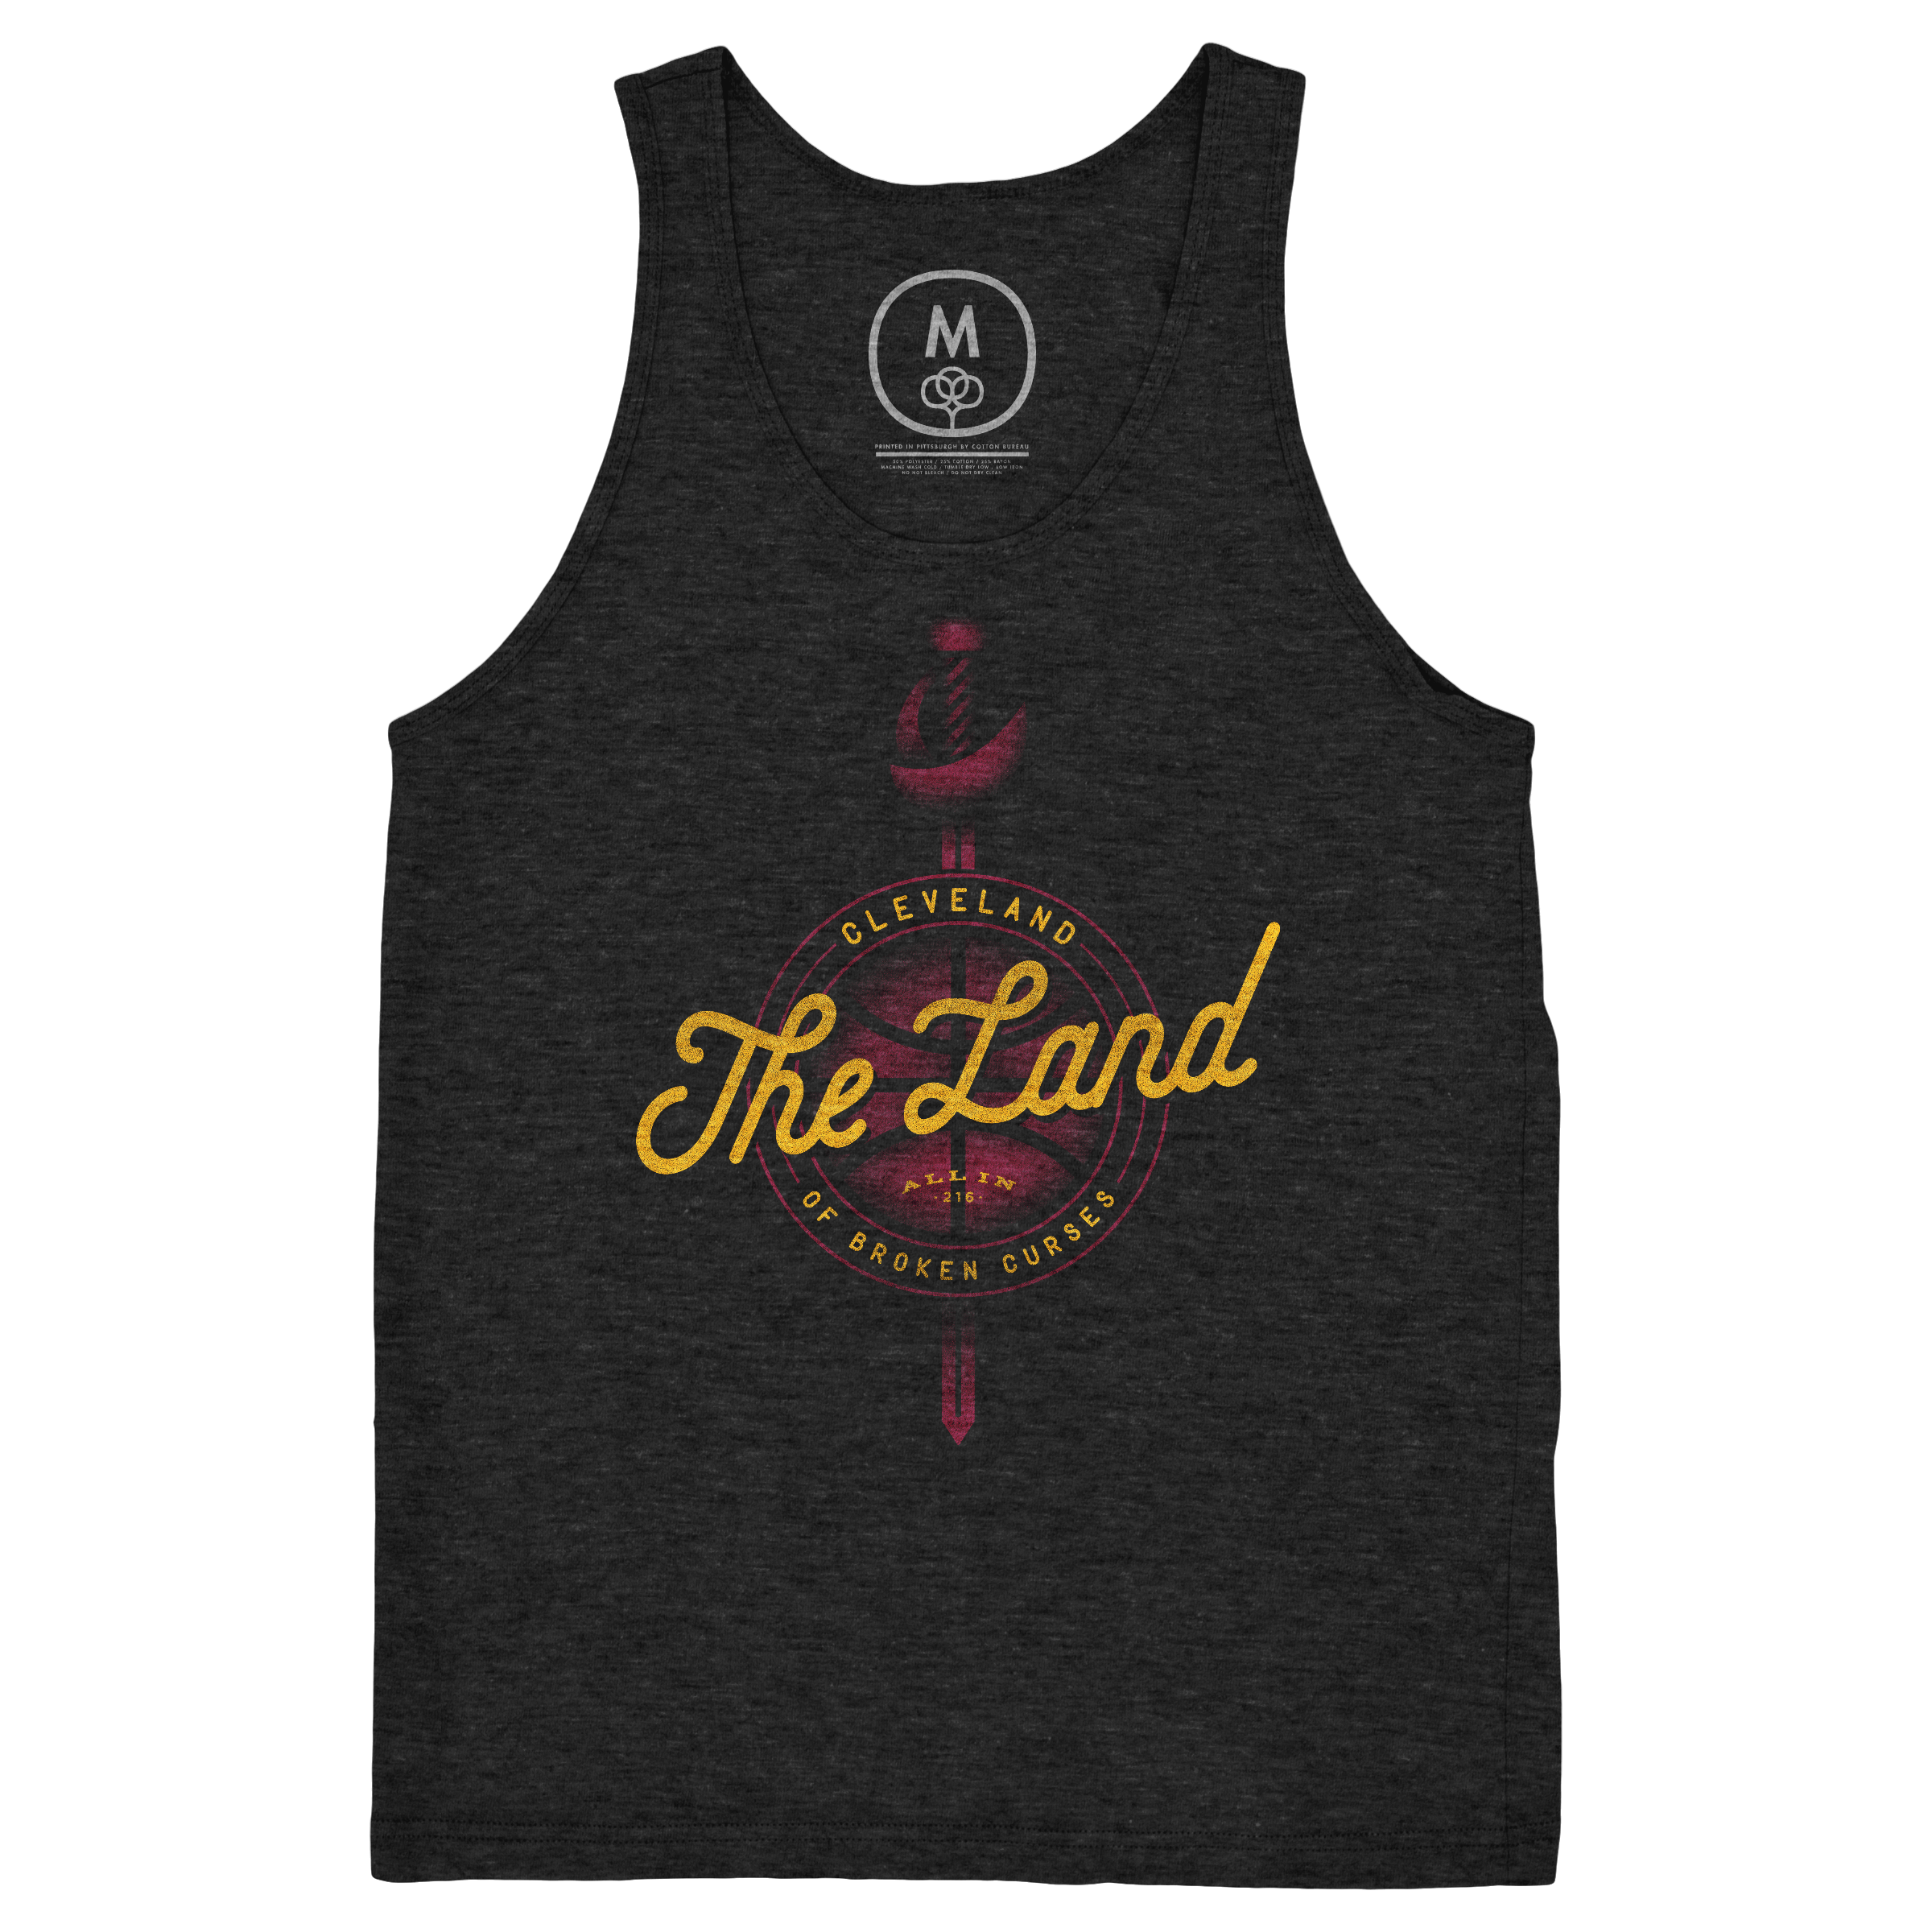 Cleveland: The Land of Broken Curses Tank Top